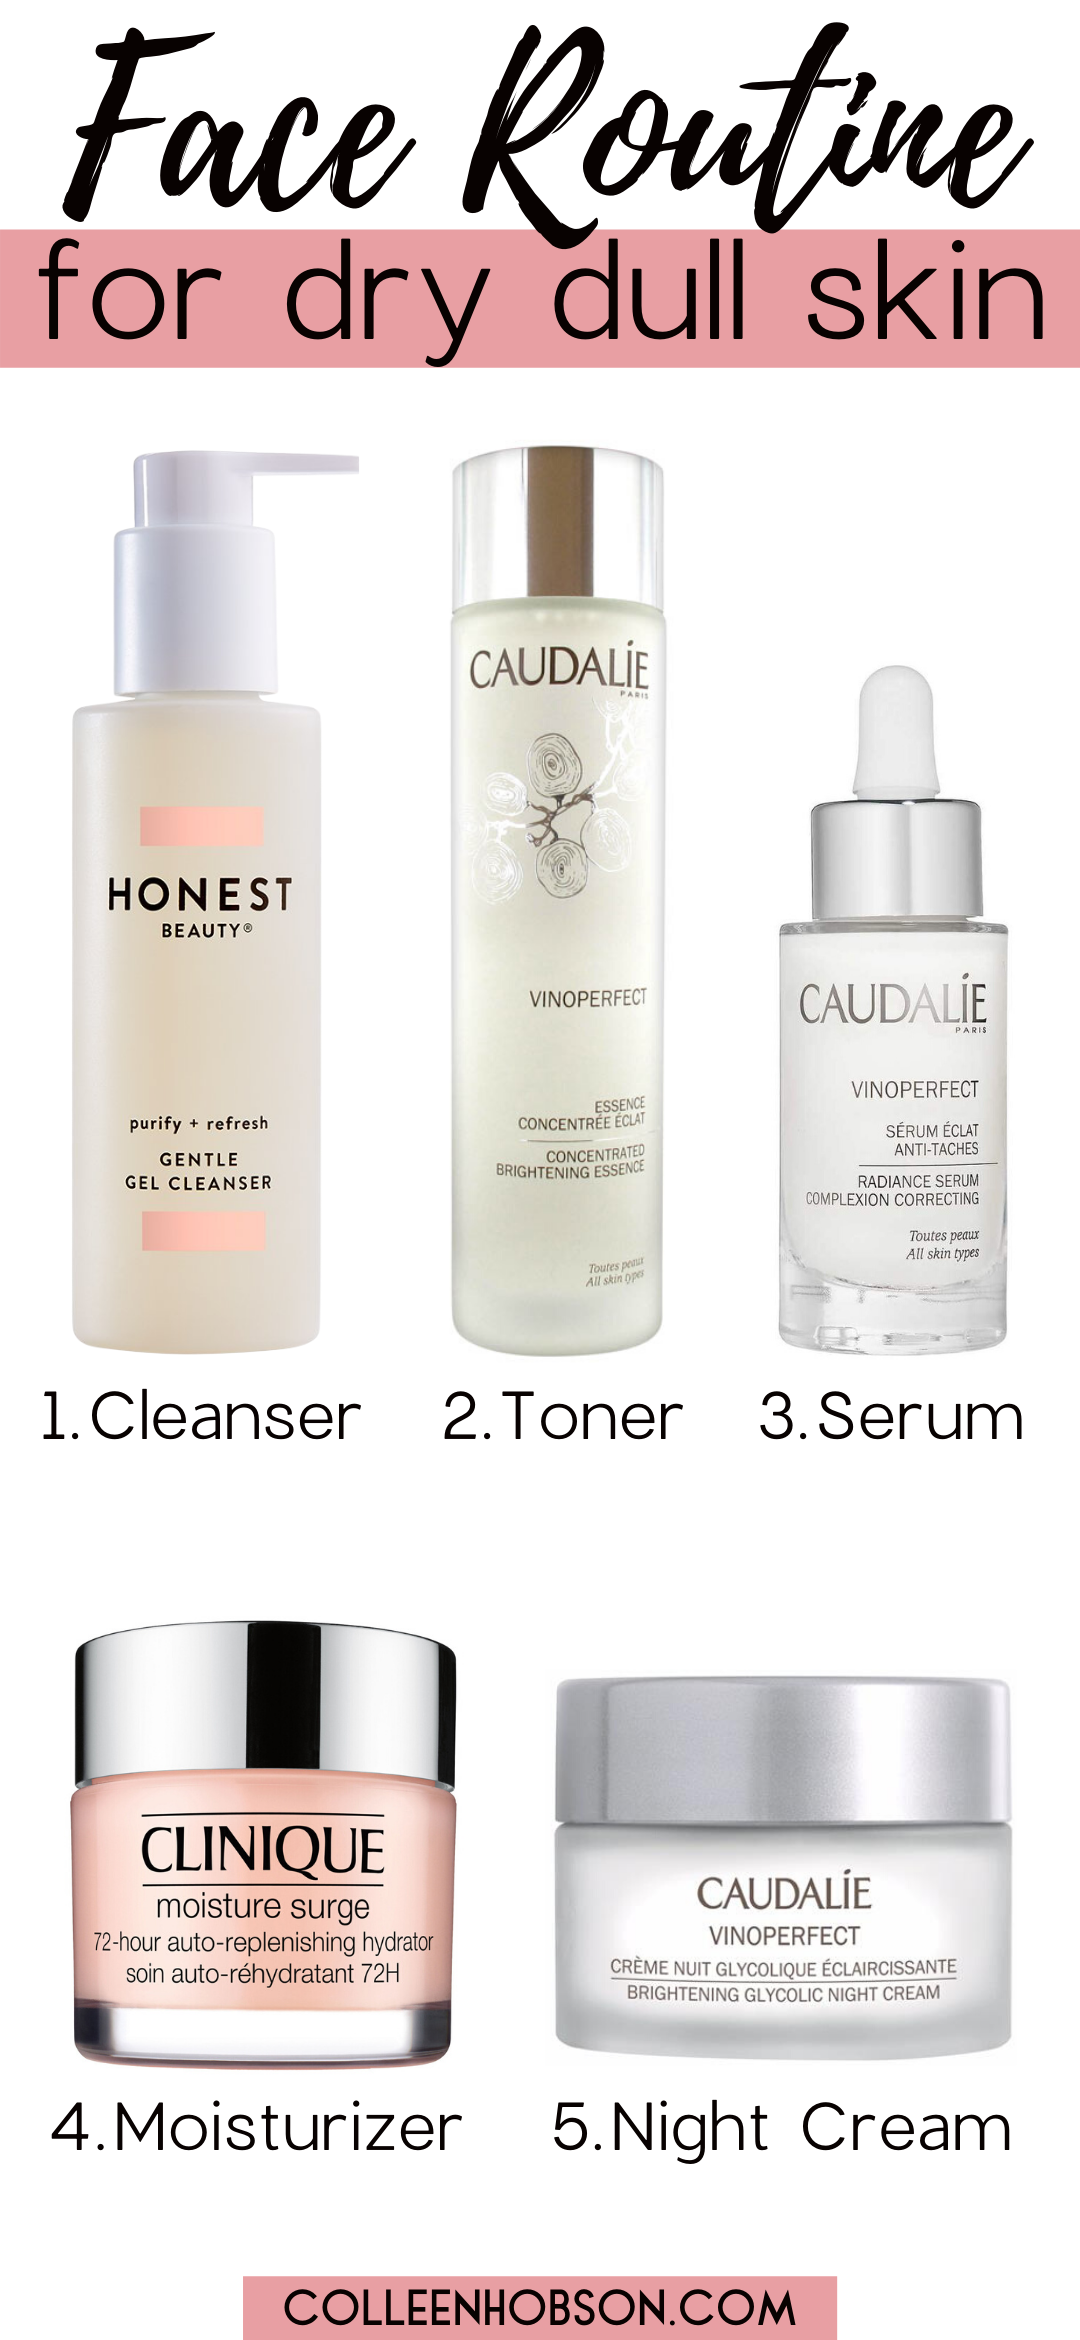 Amazing Daily Skincare Routine For Dry Dull Skin In 2020 Skin Care Dull Skin Skin Care Routine